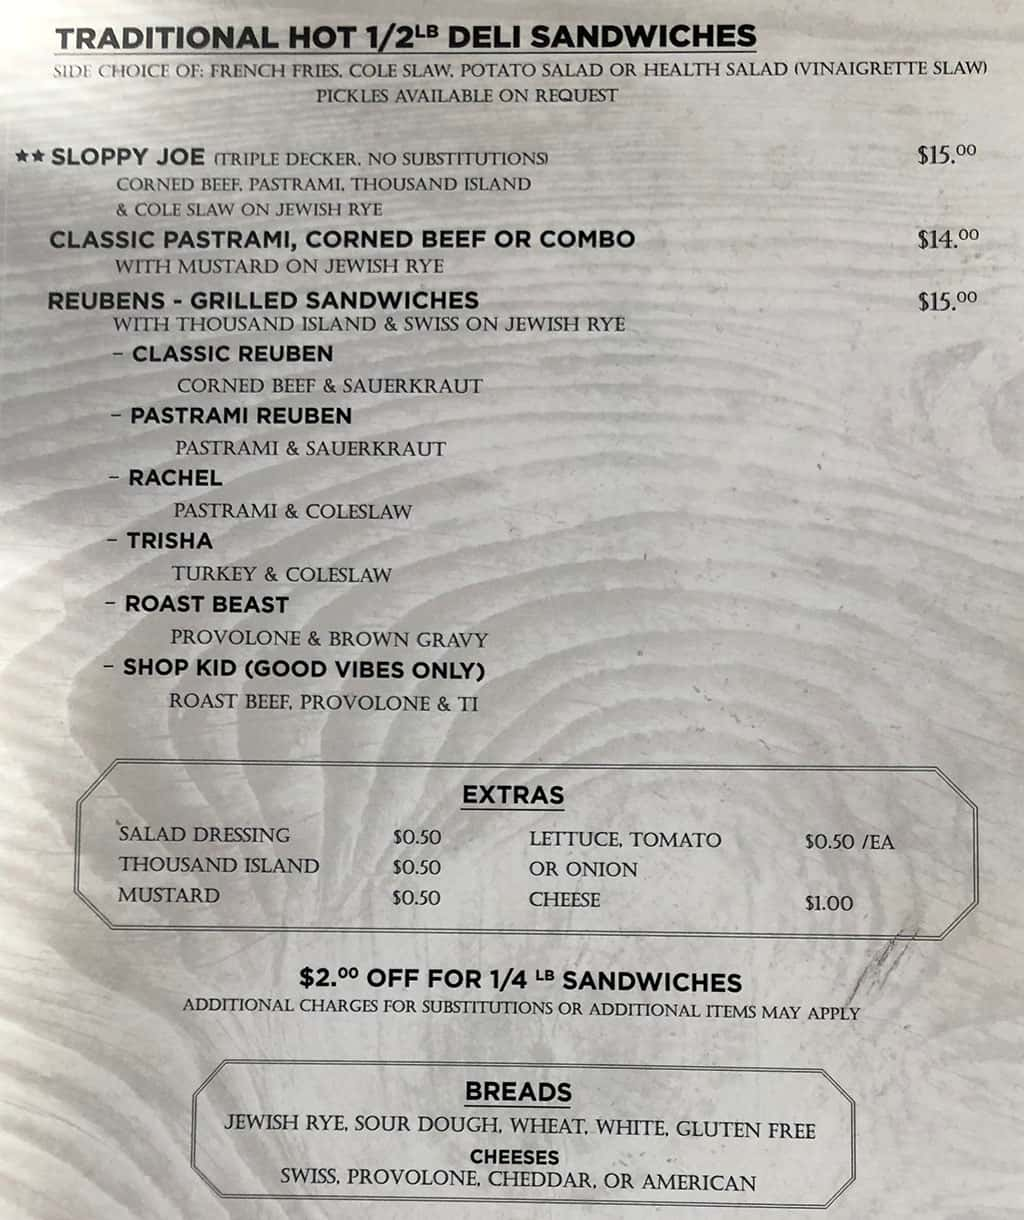 Feldmans Deli menu - traditional half pound hot sandwiches